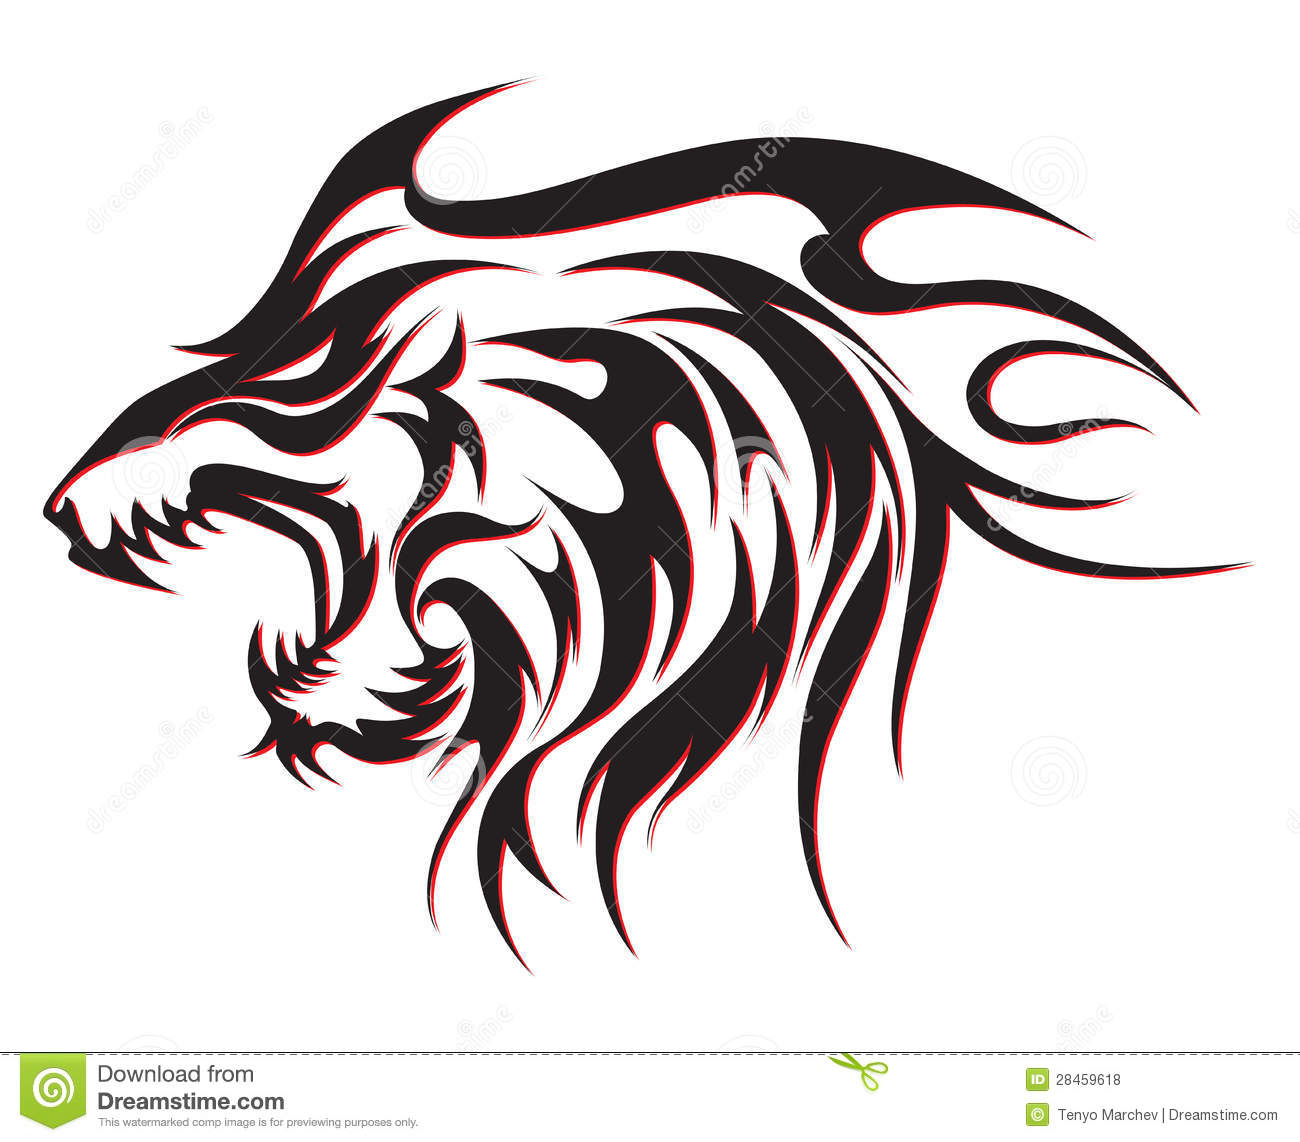 tribal wolf tattoo royalty free stock photos image 28459618. Black Bedroom Furniture Sets. Home Design Ideas